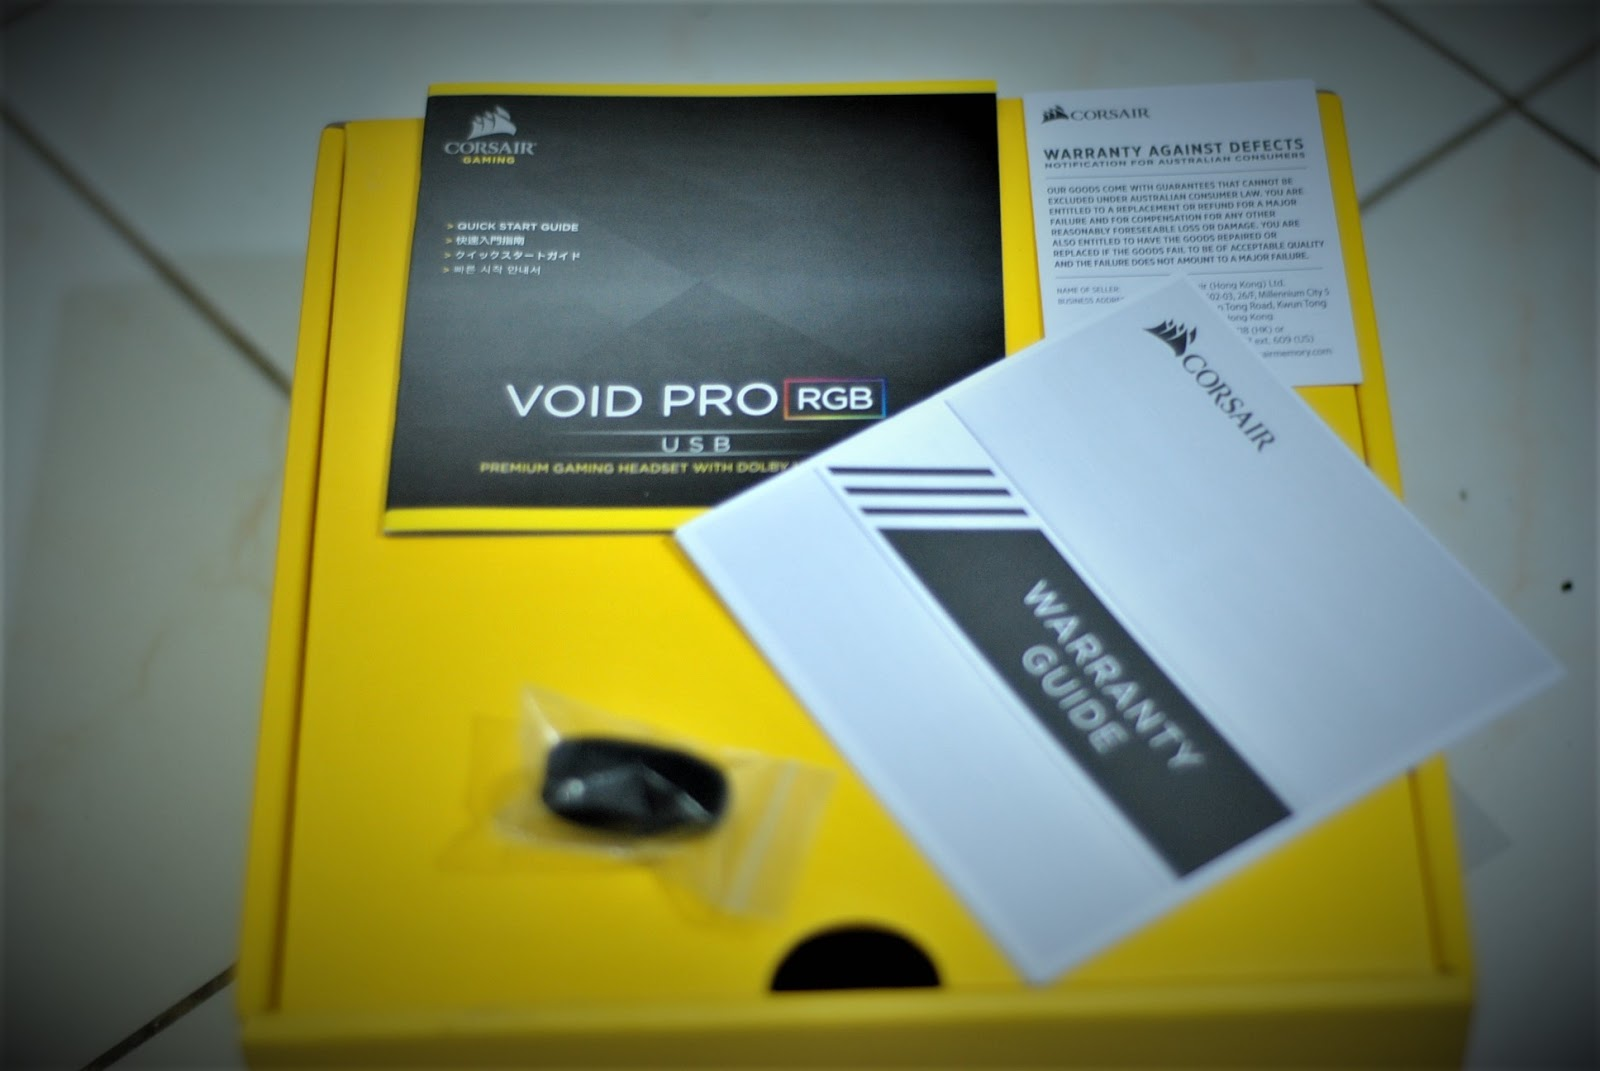 Review Corsair Void Pro Rgb Usb Urbantechnoobs Dolby 71 Gaming Headset White Inside The Box Youll Find Mic Windscreen Warranty Guide And A Quick Start Nothing Special Included In